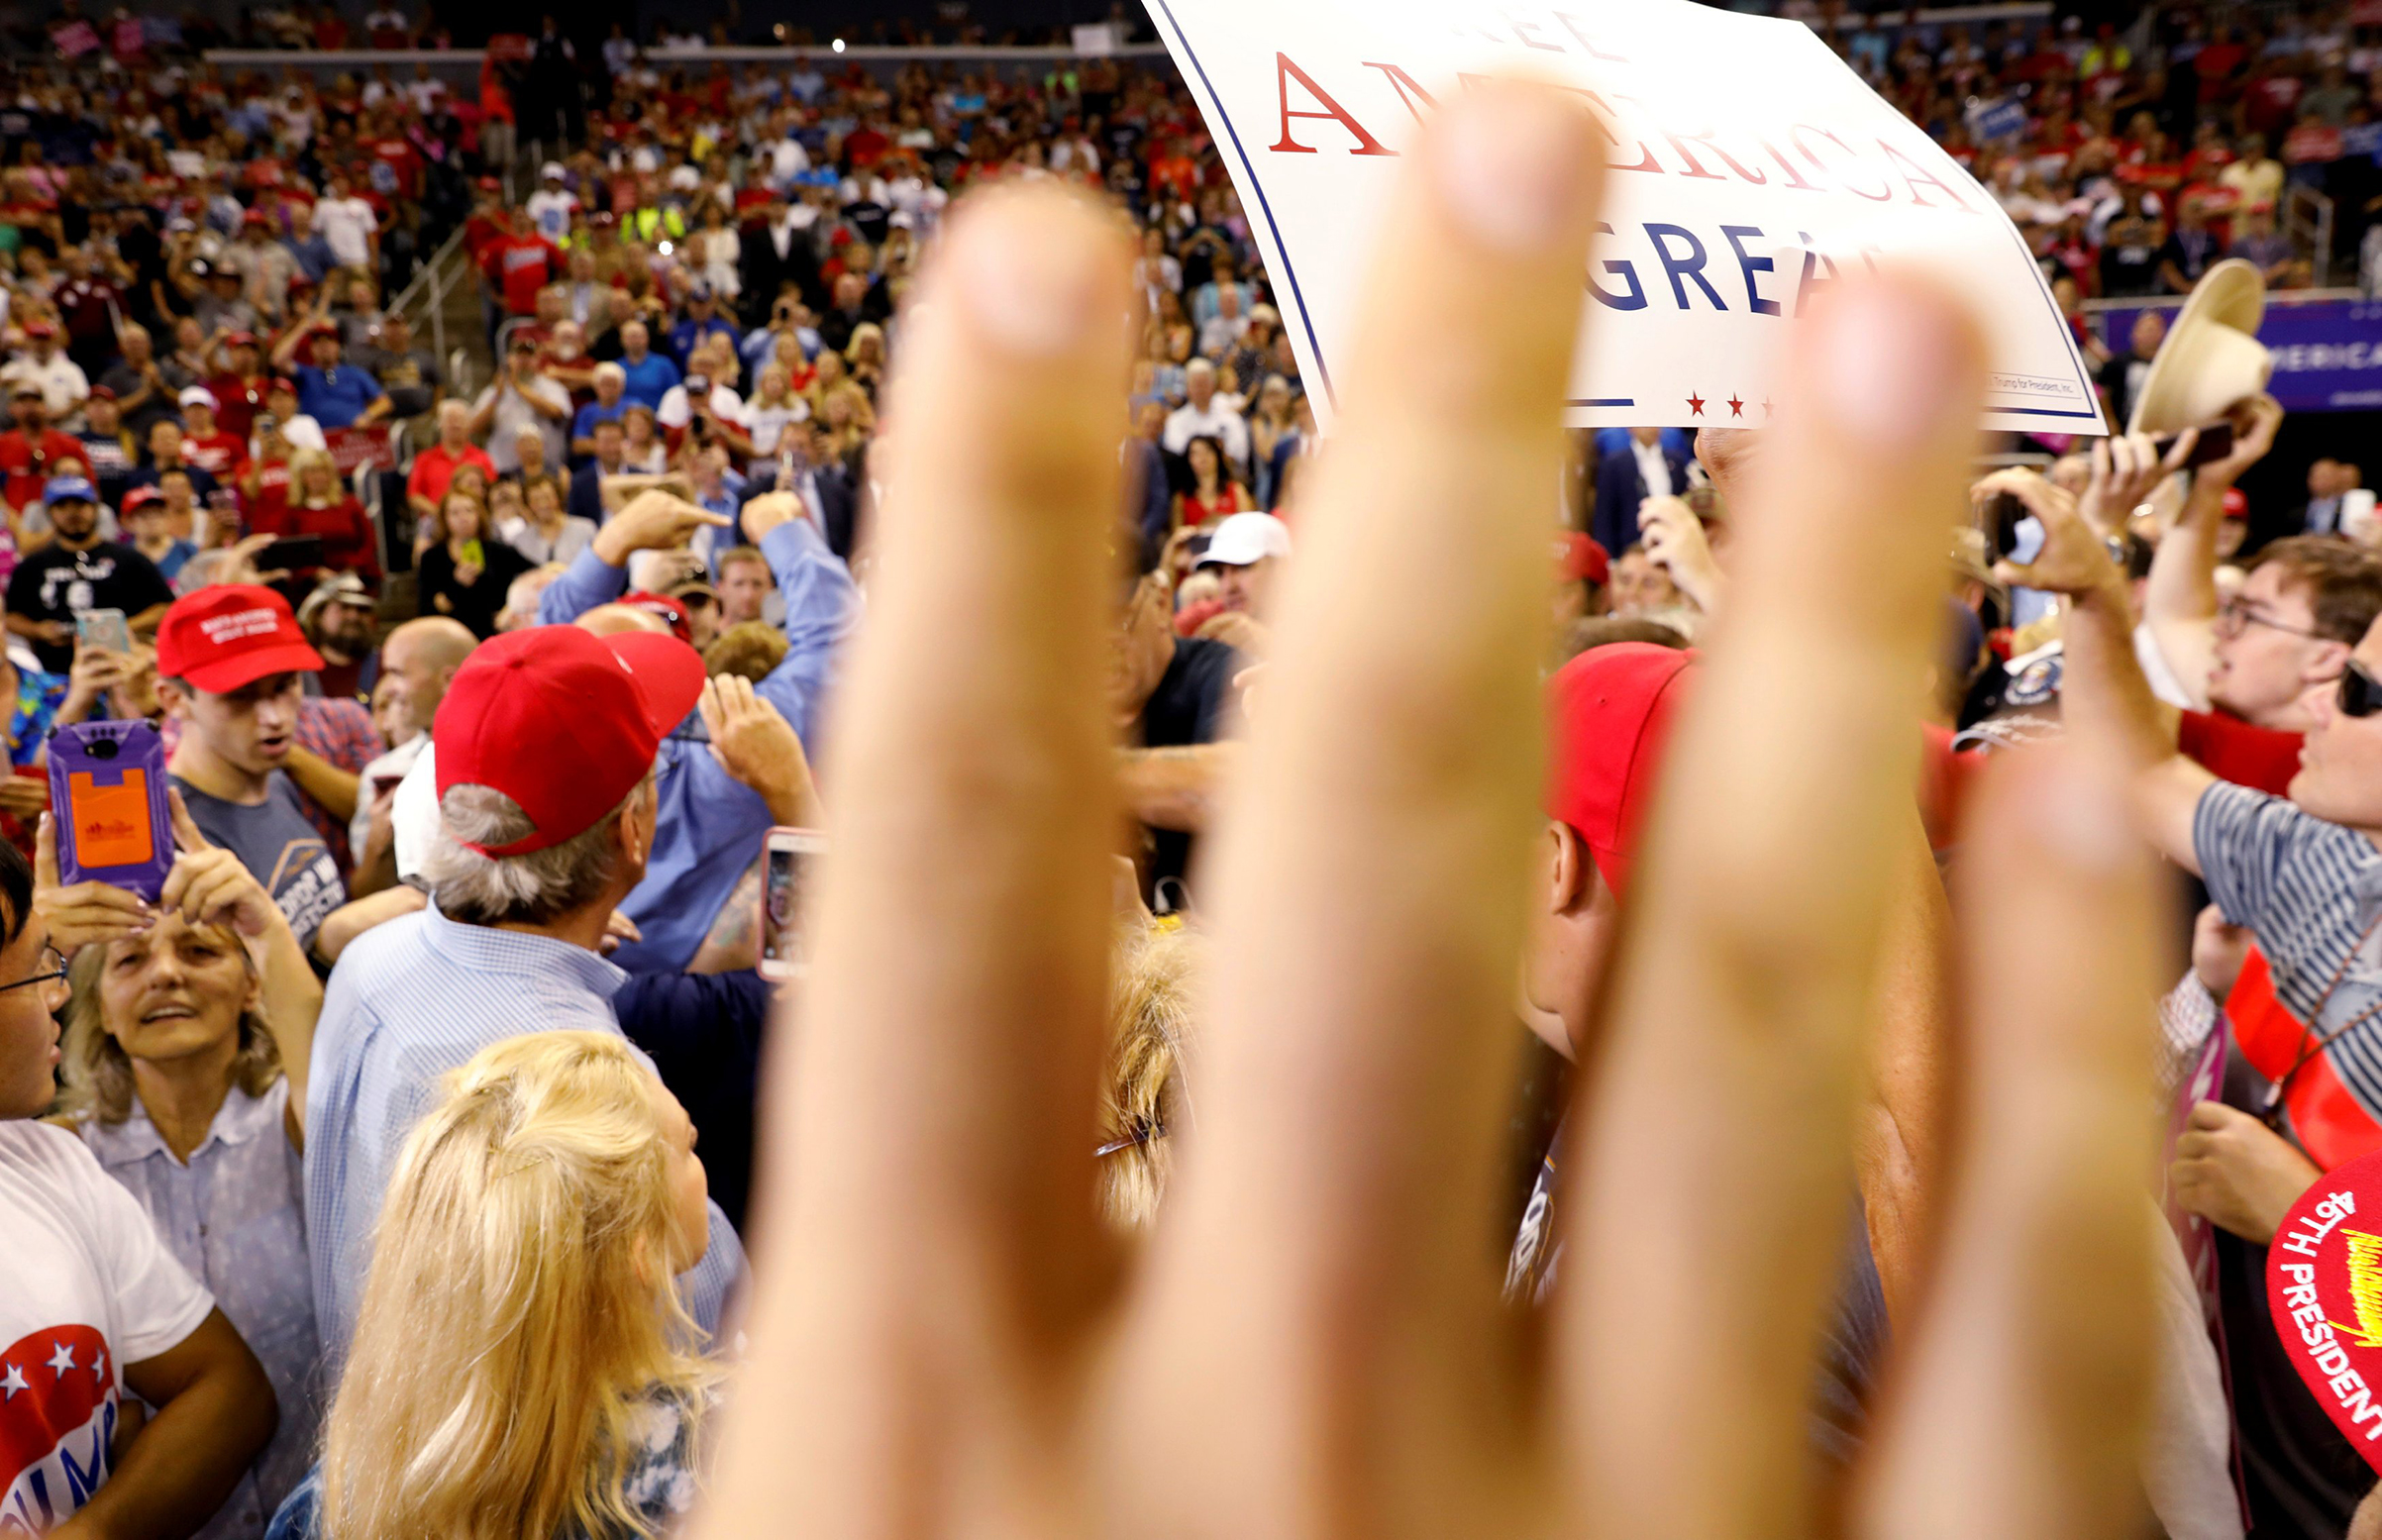 A volunteer for Trump attempts to block the view of protesters a  Make America Great Again  rally in Evansville, Indiana, August 30, 2018.